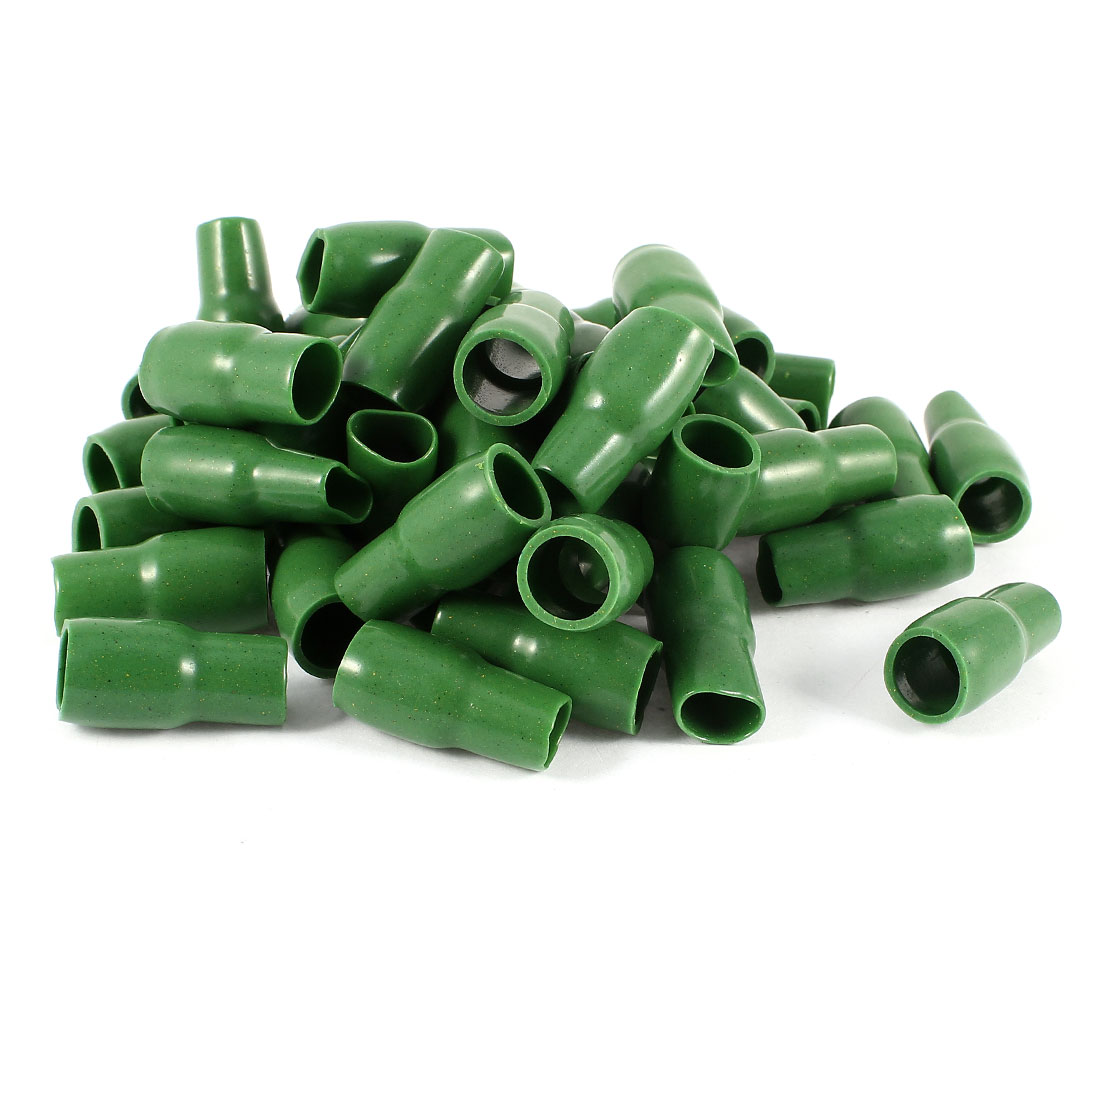 50 Pcs Green Soft PVC Wire V-22 25mm2 Crimp Terminal End Insulated Sleeves Caps Cover